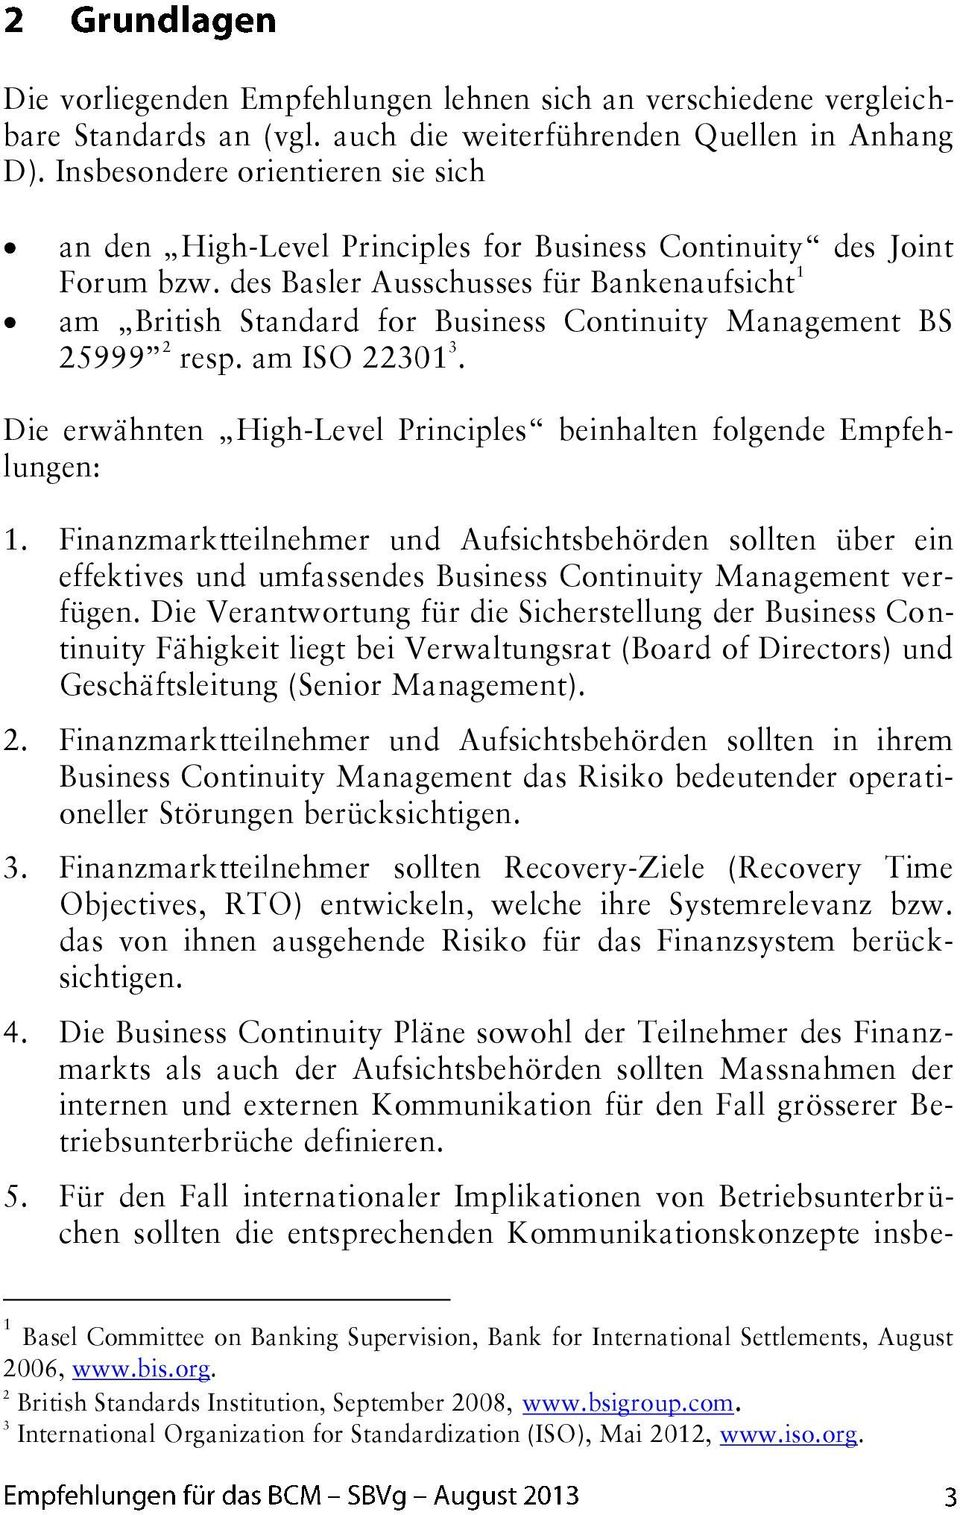 des Basler Ausschusses für Bankenaufsicht 1 am British Standard for Business Continuity Management BS 25999 2 resp. am ISO 22301 3.